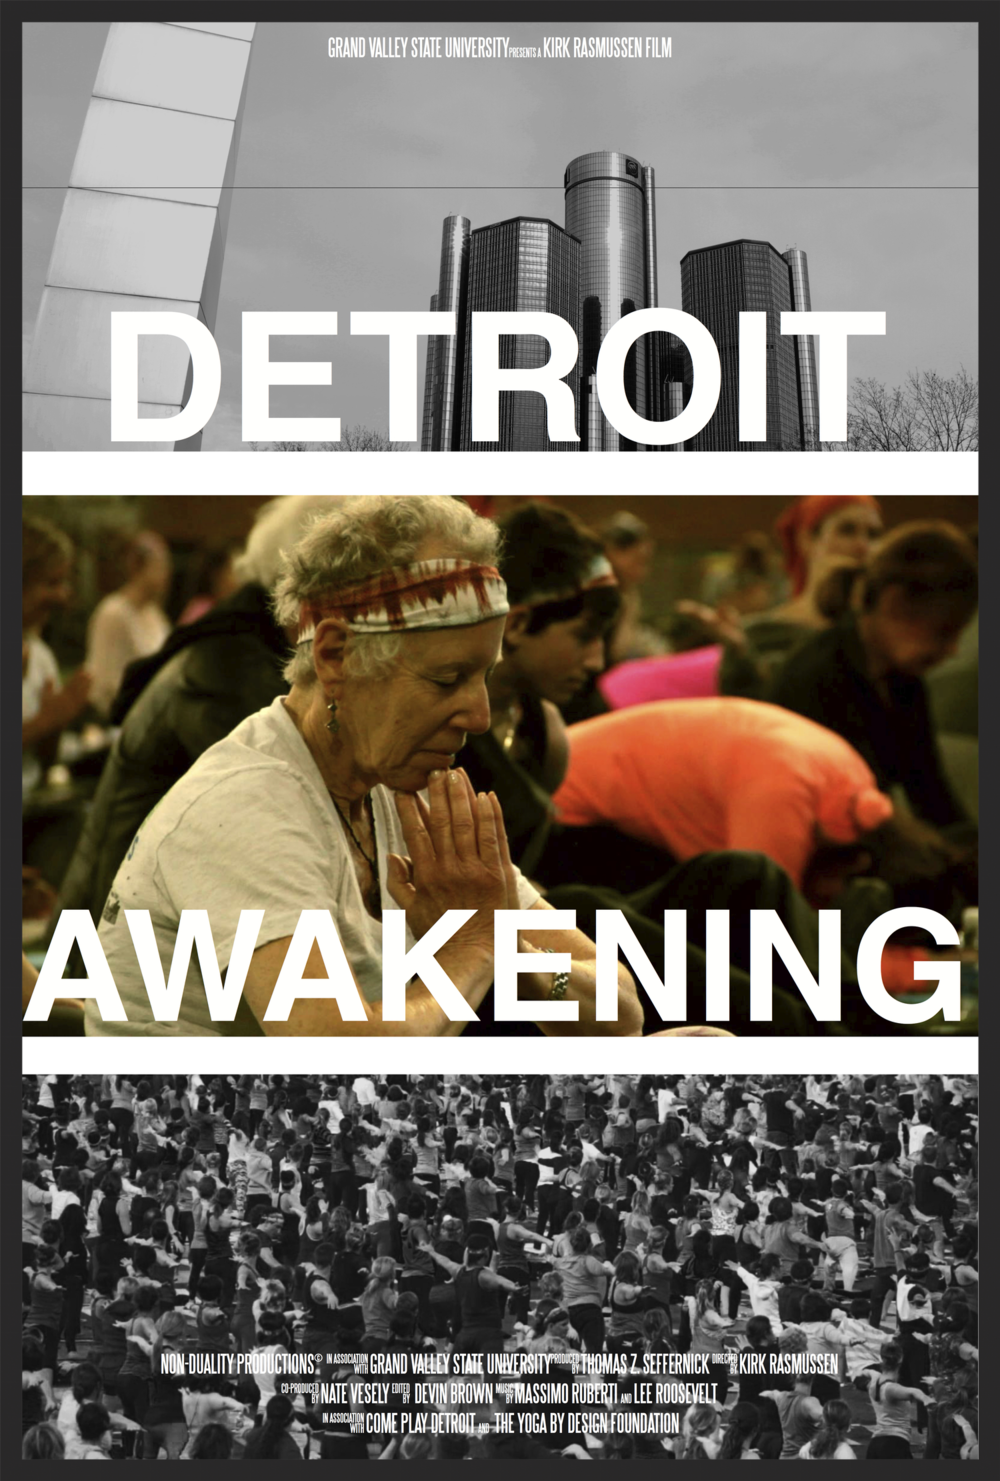 Detroit Awakening    is a film about the identity of Detroit, and the works of Individuals who redefine their city by setting a world-record Yoga Session at the iconic Ford Field Stadium. The film debut at the GVSU Showcase, 2014.